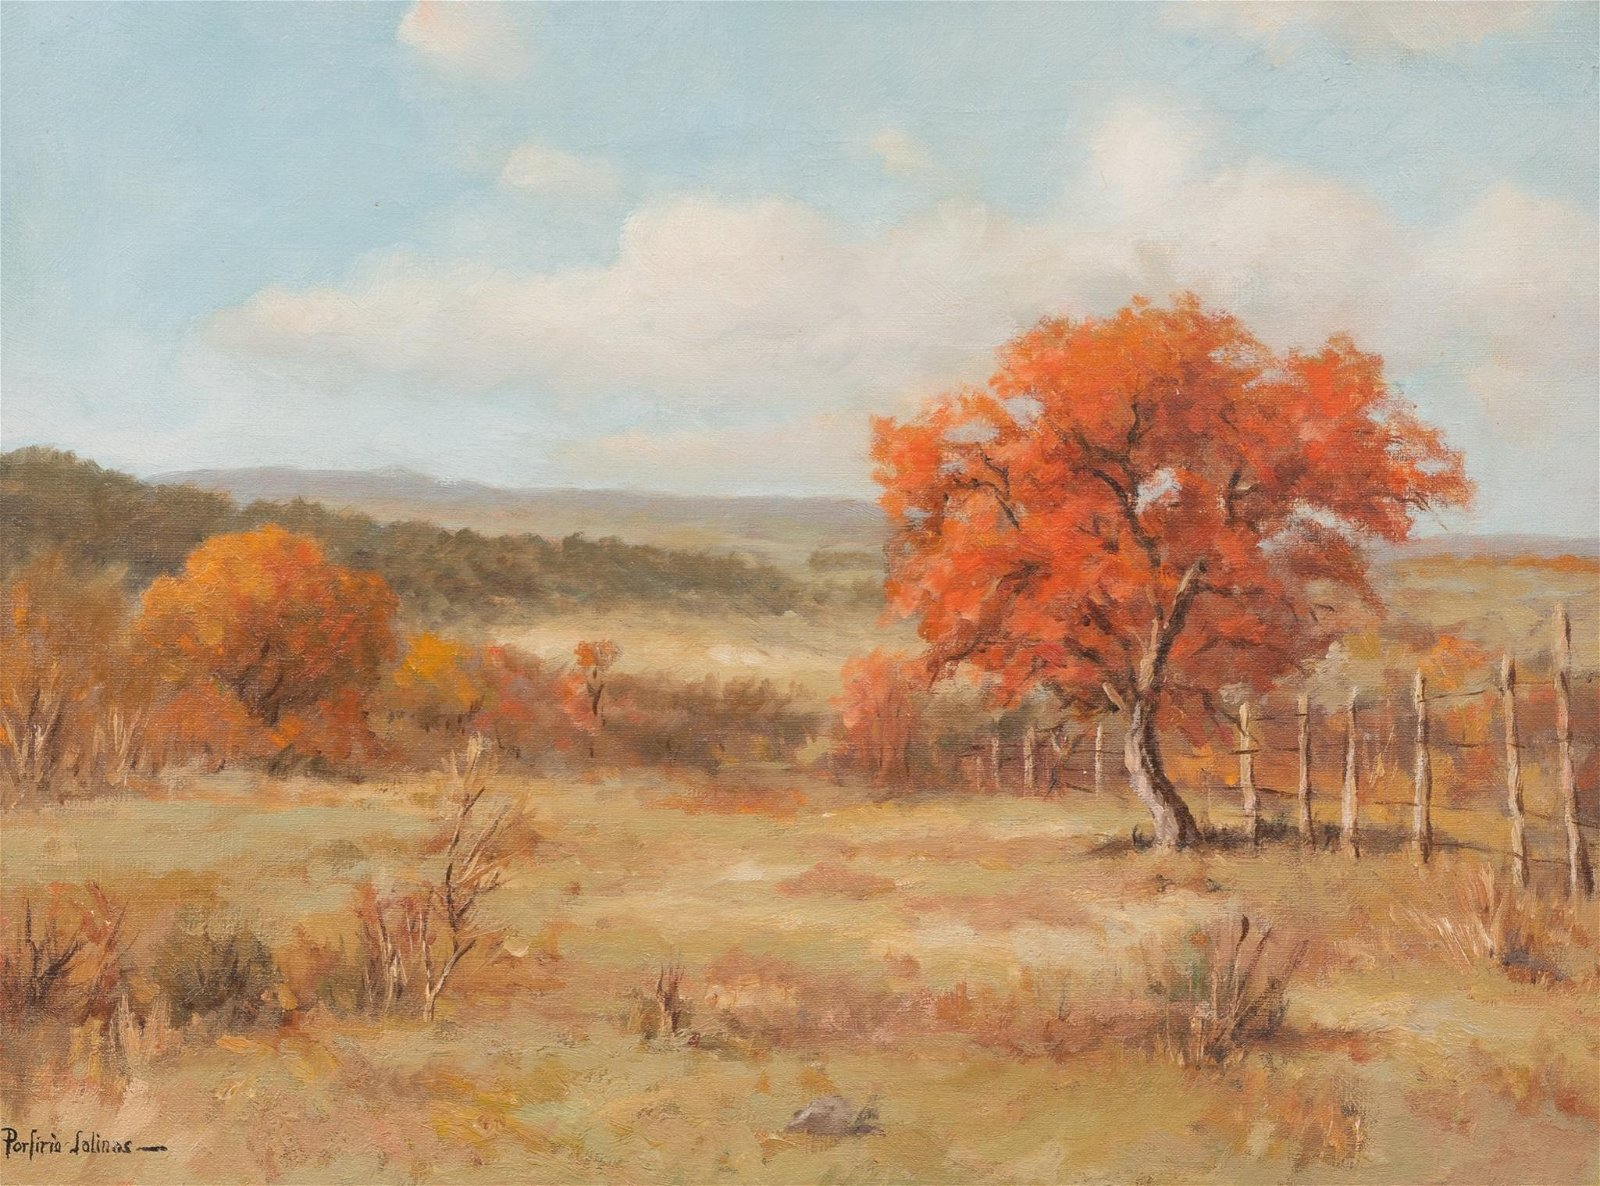 Porfirio Salinas (1910-1973), Autumn, oil on canvas